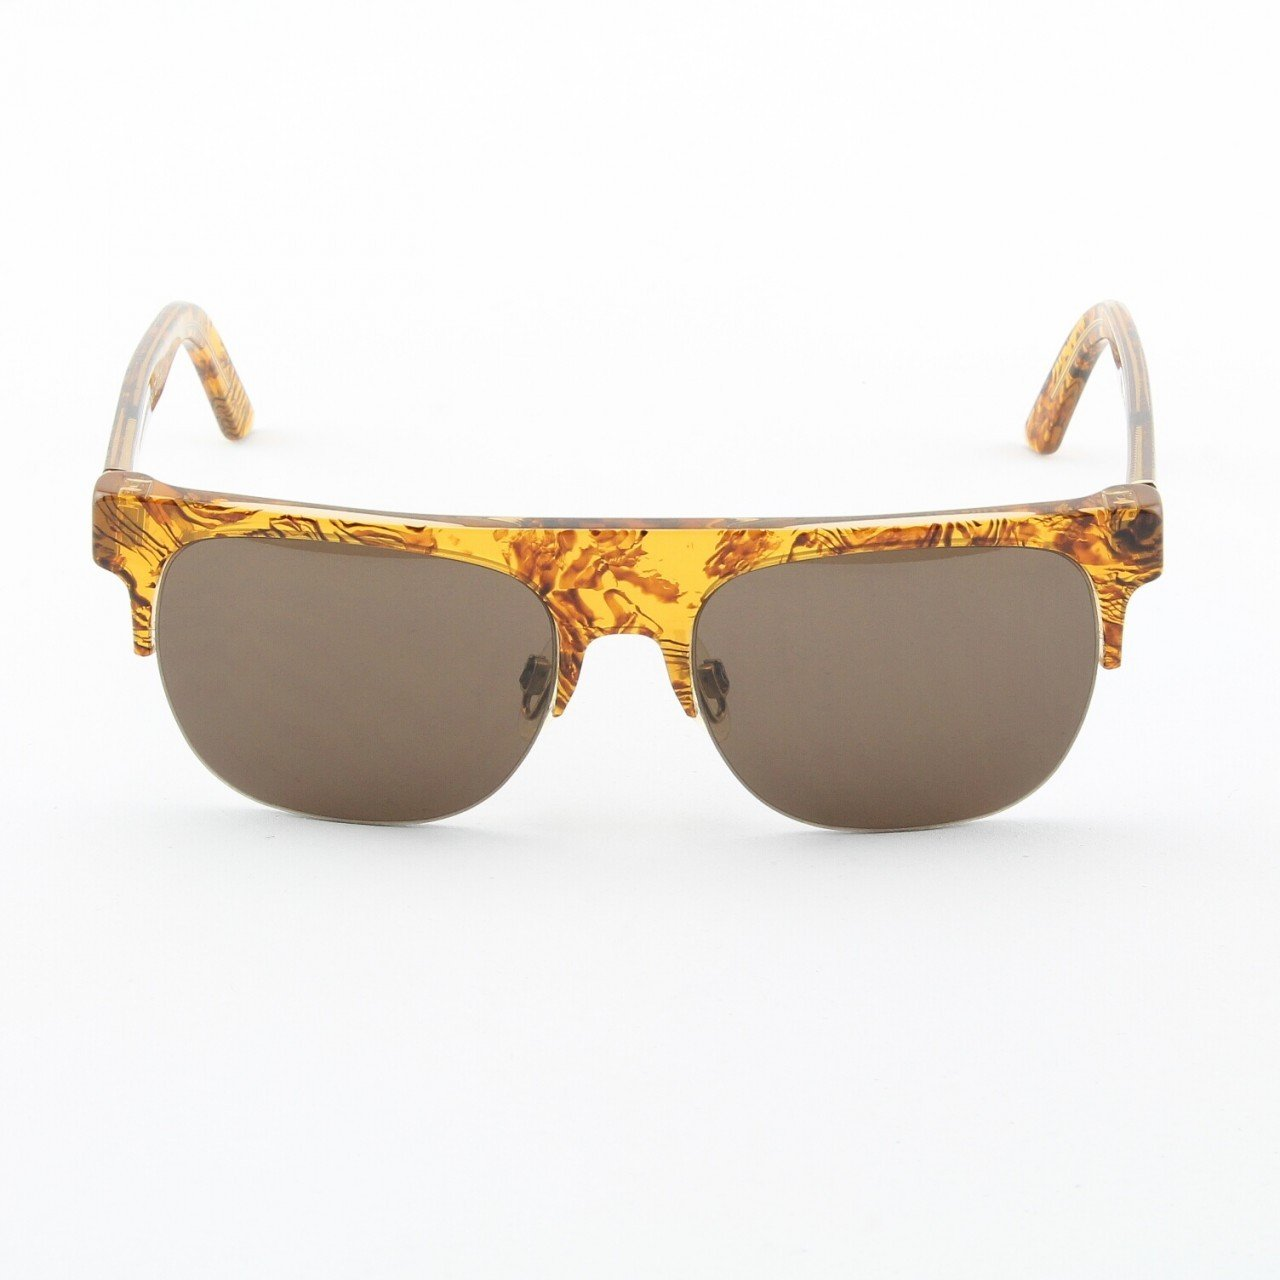 Super Andrea 264 Sunglasses Summer Safari Pattern with Brown Zeiss Lenses by RETROSUPERFUTURE